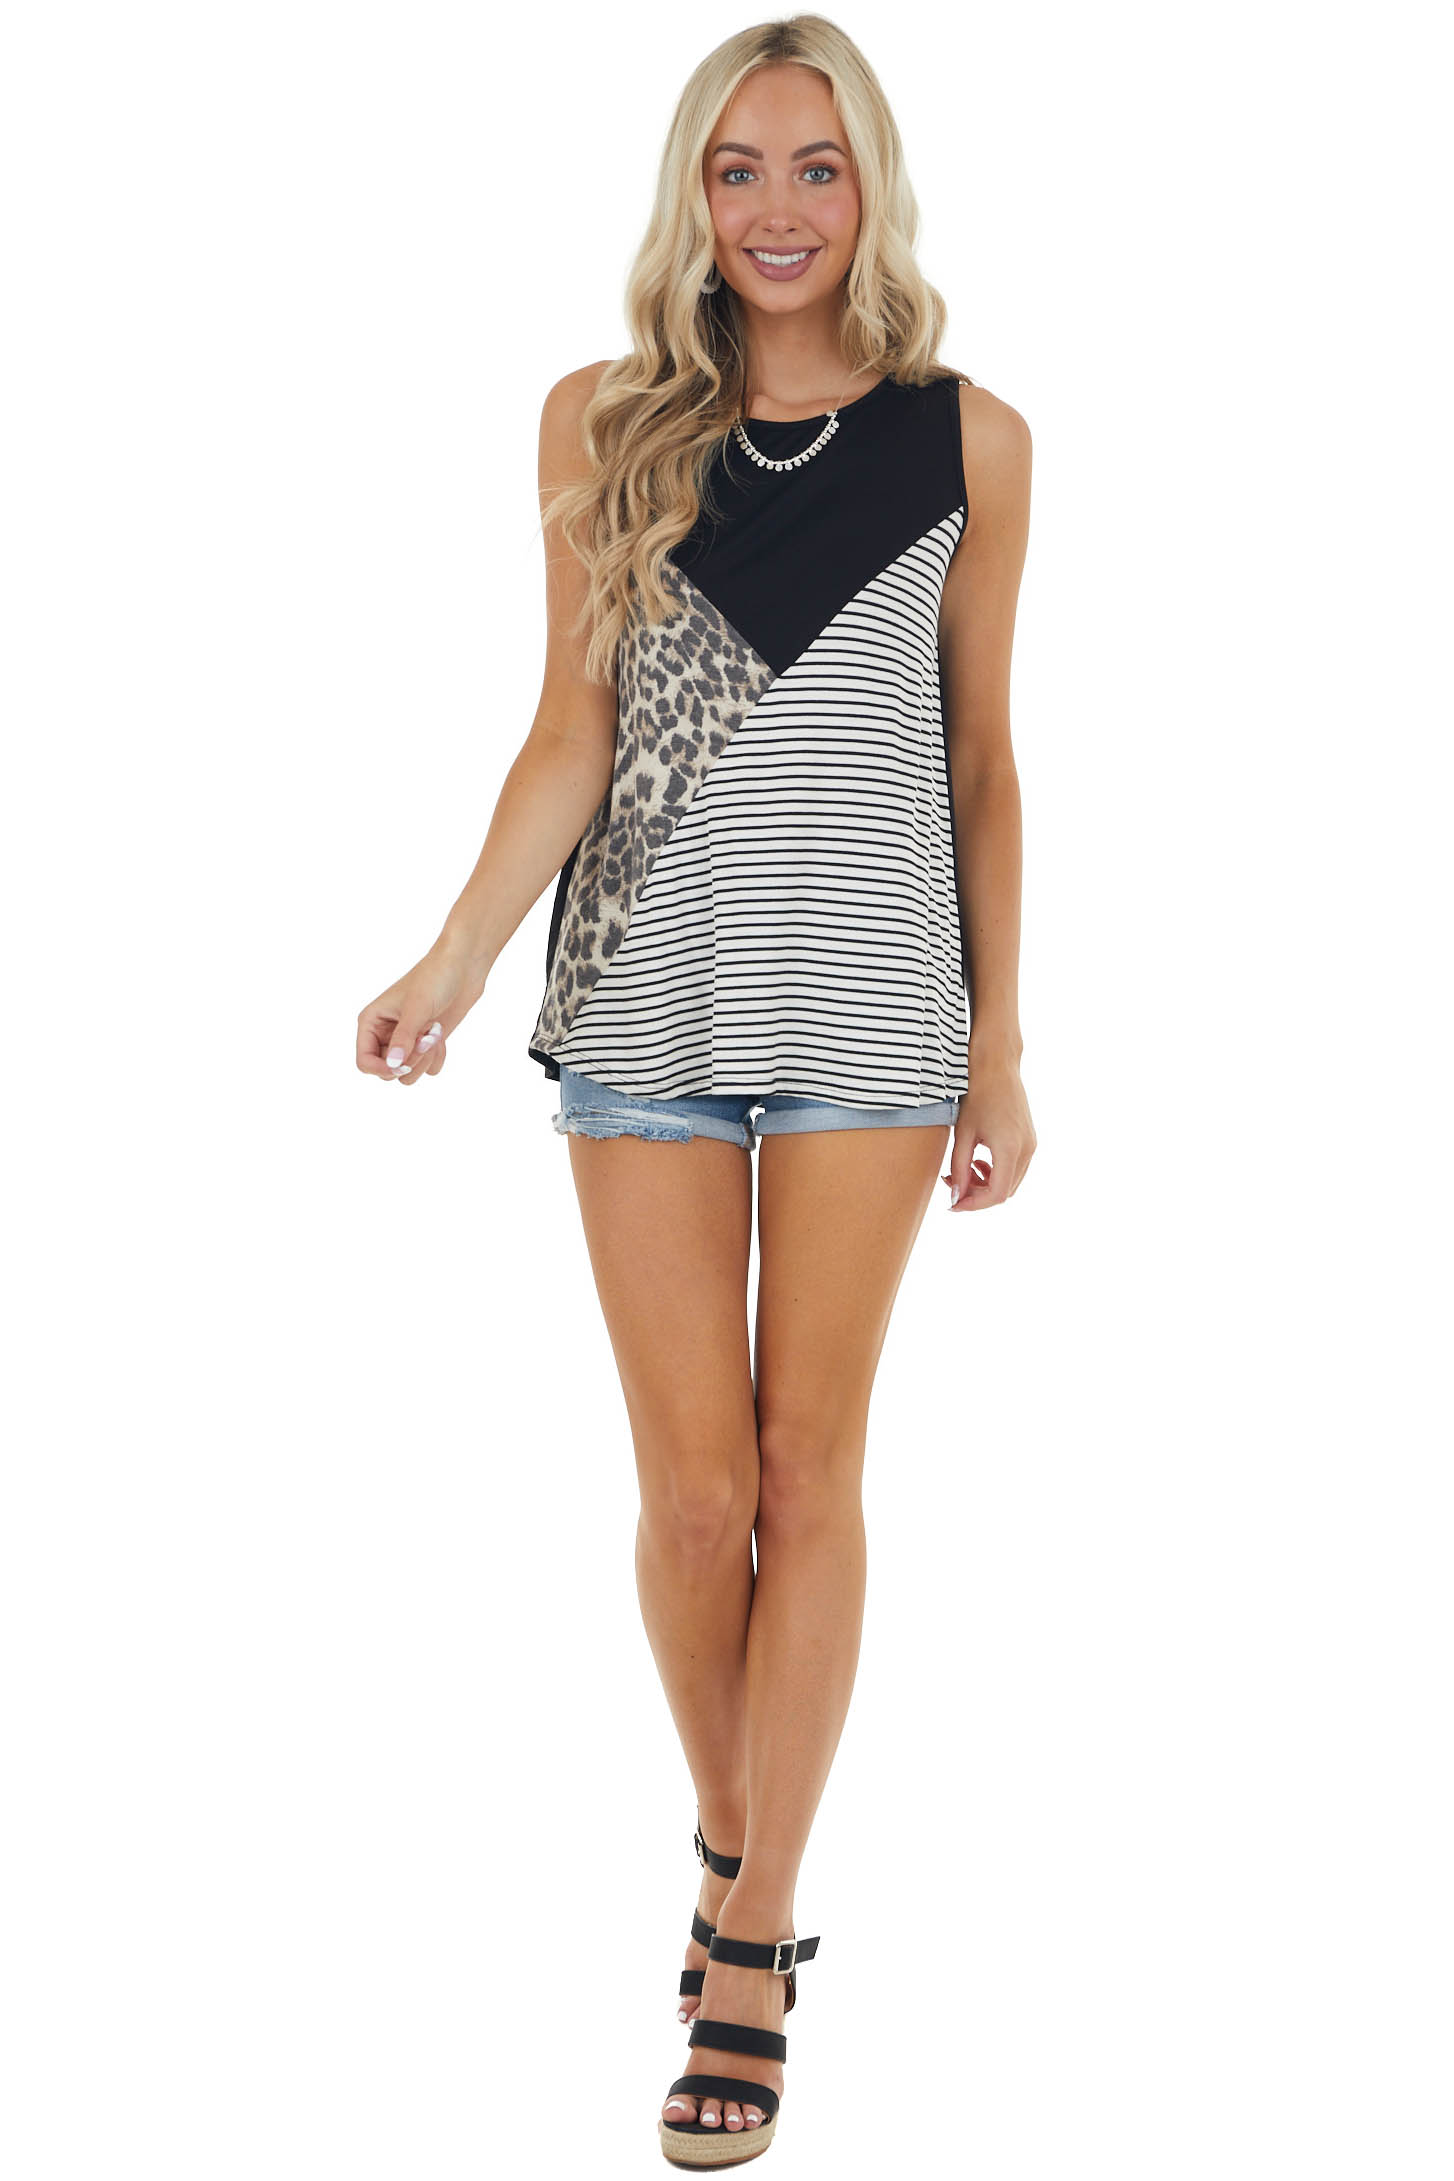 Black Sleeveless Stretchy Knit Top with Contrasting Prints